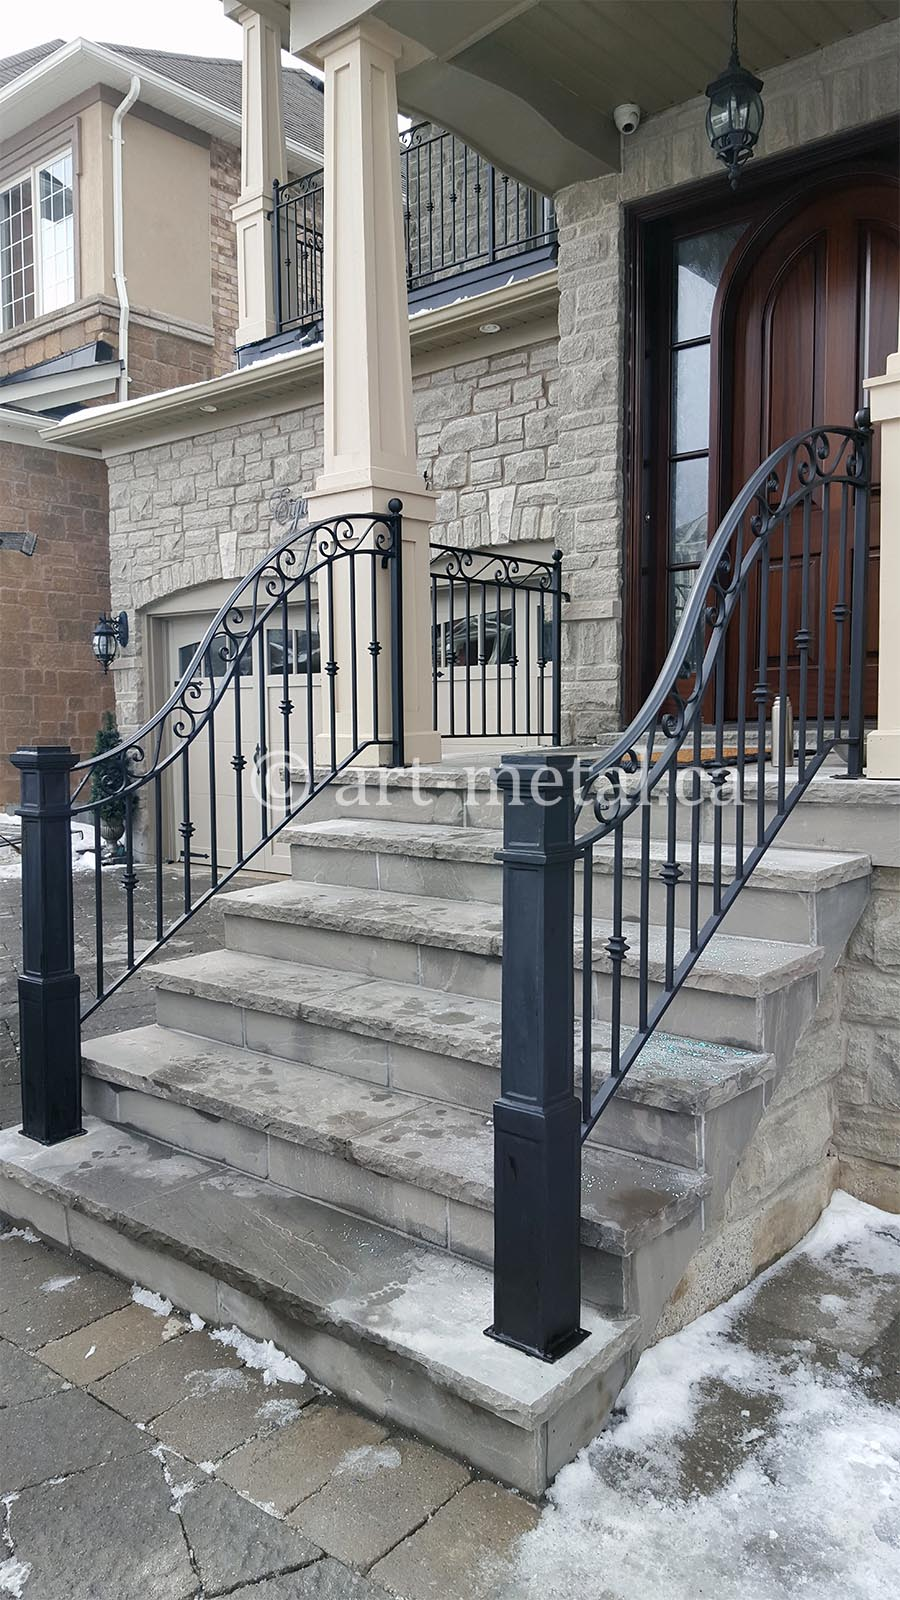 Best Exterior Wrought Iron Stair Railings You Can Get in ...